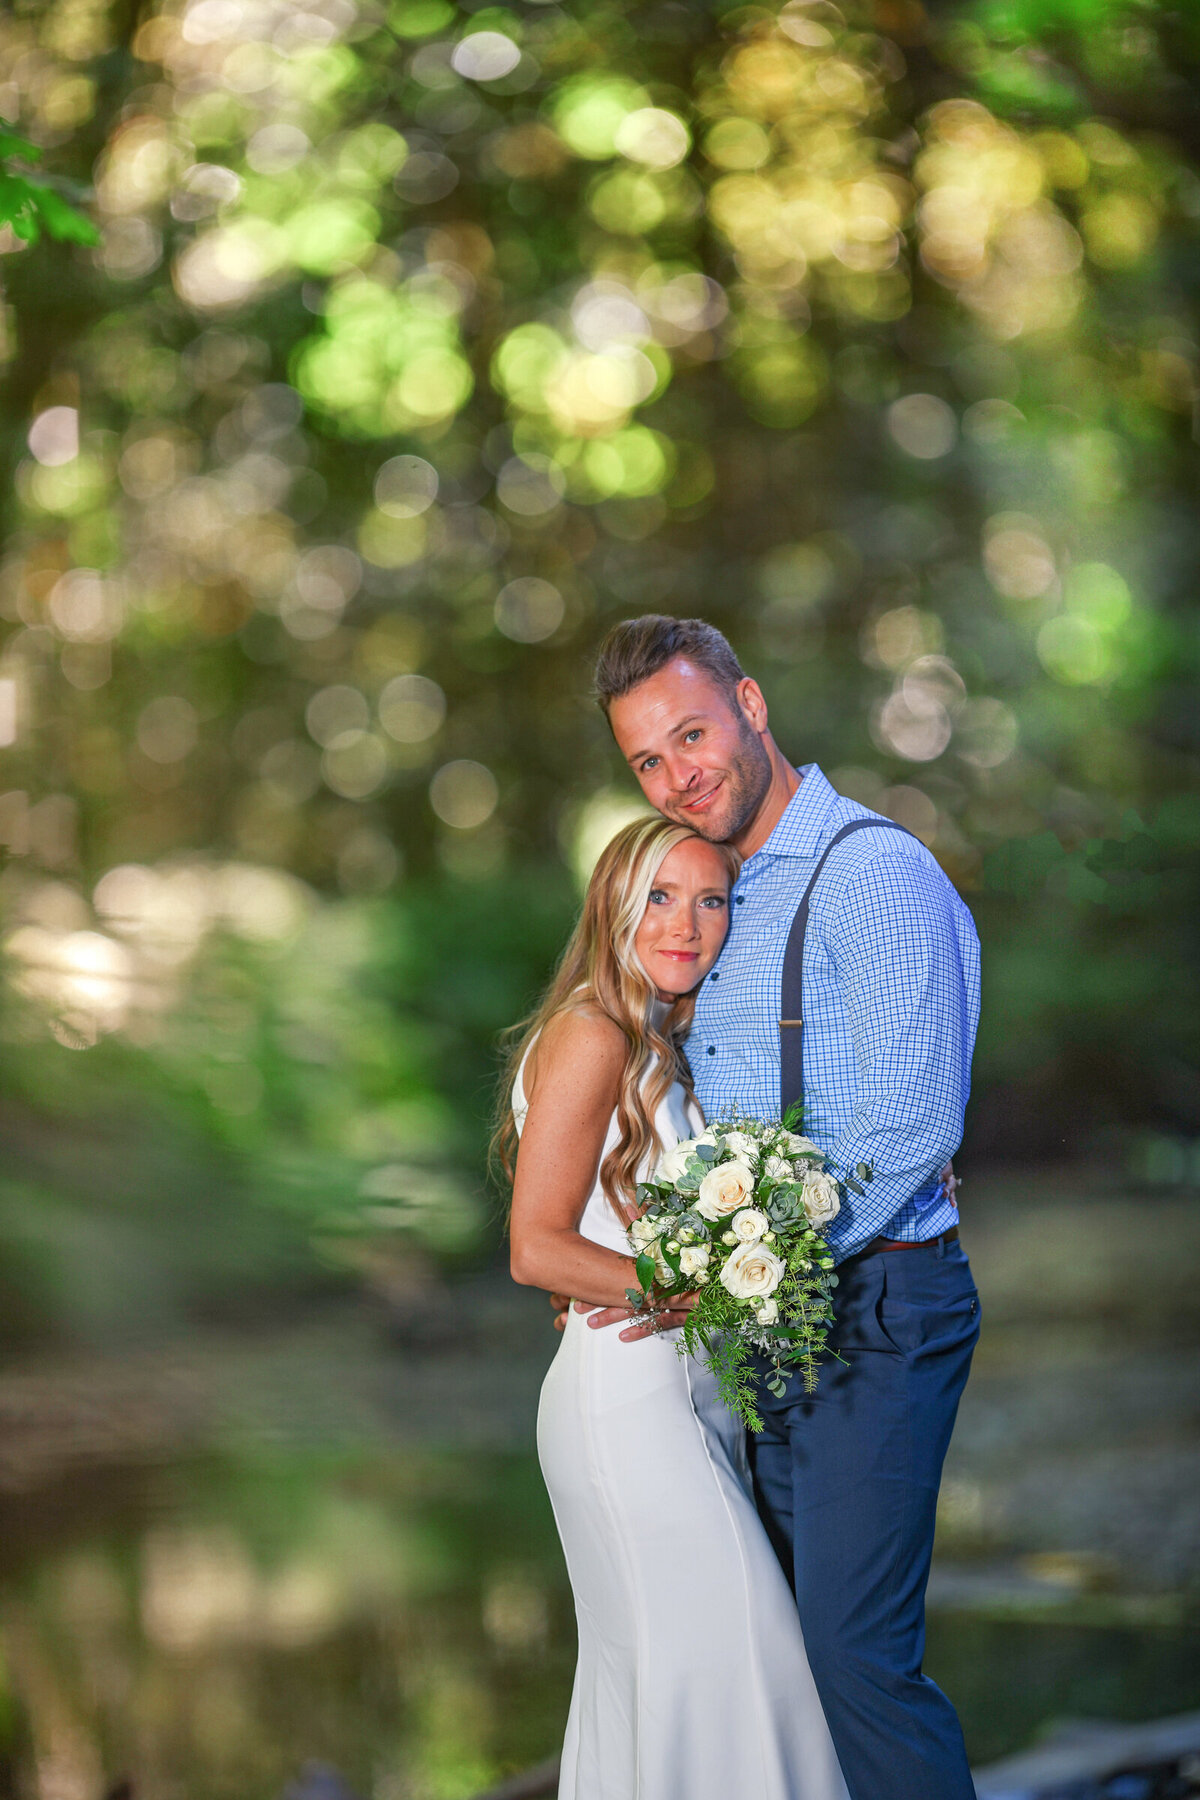 Humboldt-County-Elopement-Photographer-Redwoods-Avenue-of-the-Giants-Humboldt-Redwoods-Redwood-National-Park-Parky's-Pics-Coastal-Redwoods-Elopements-47